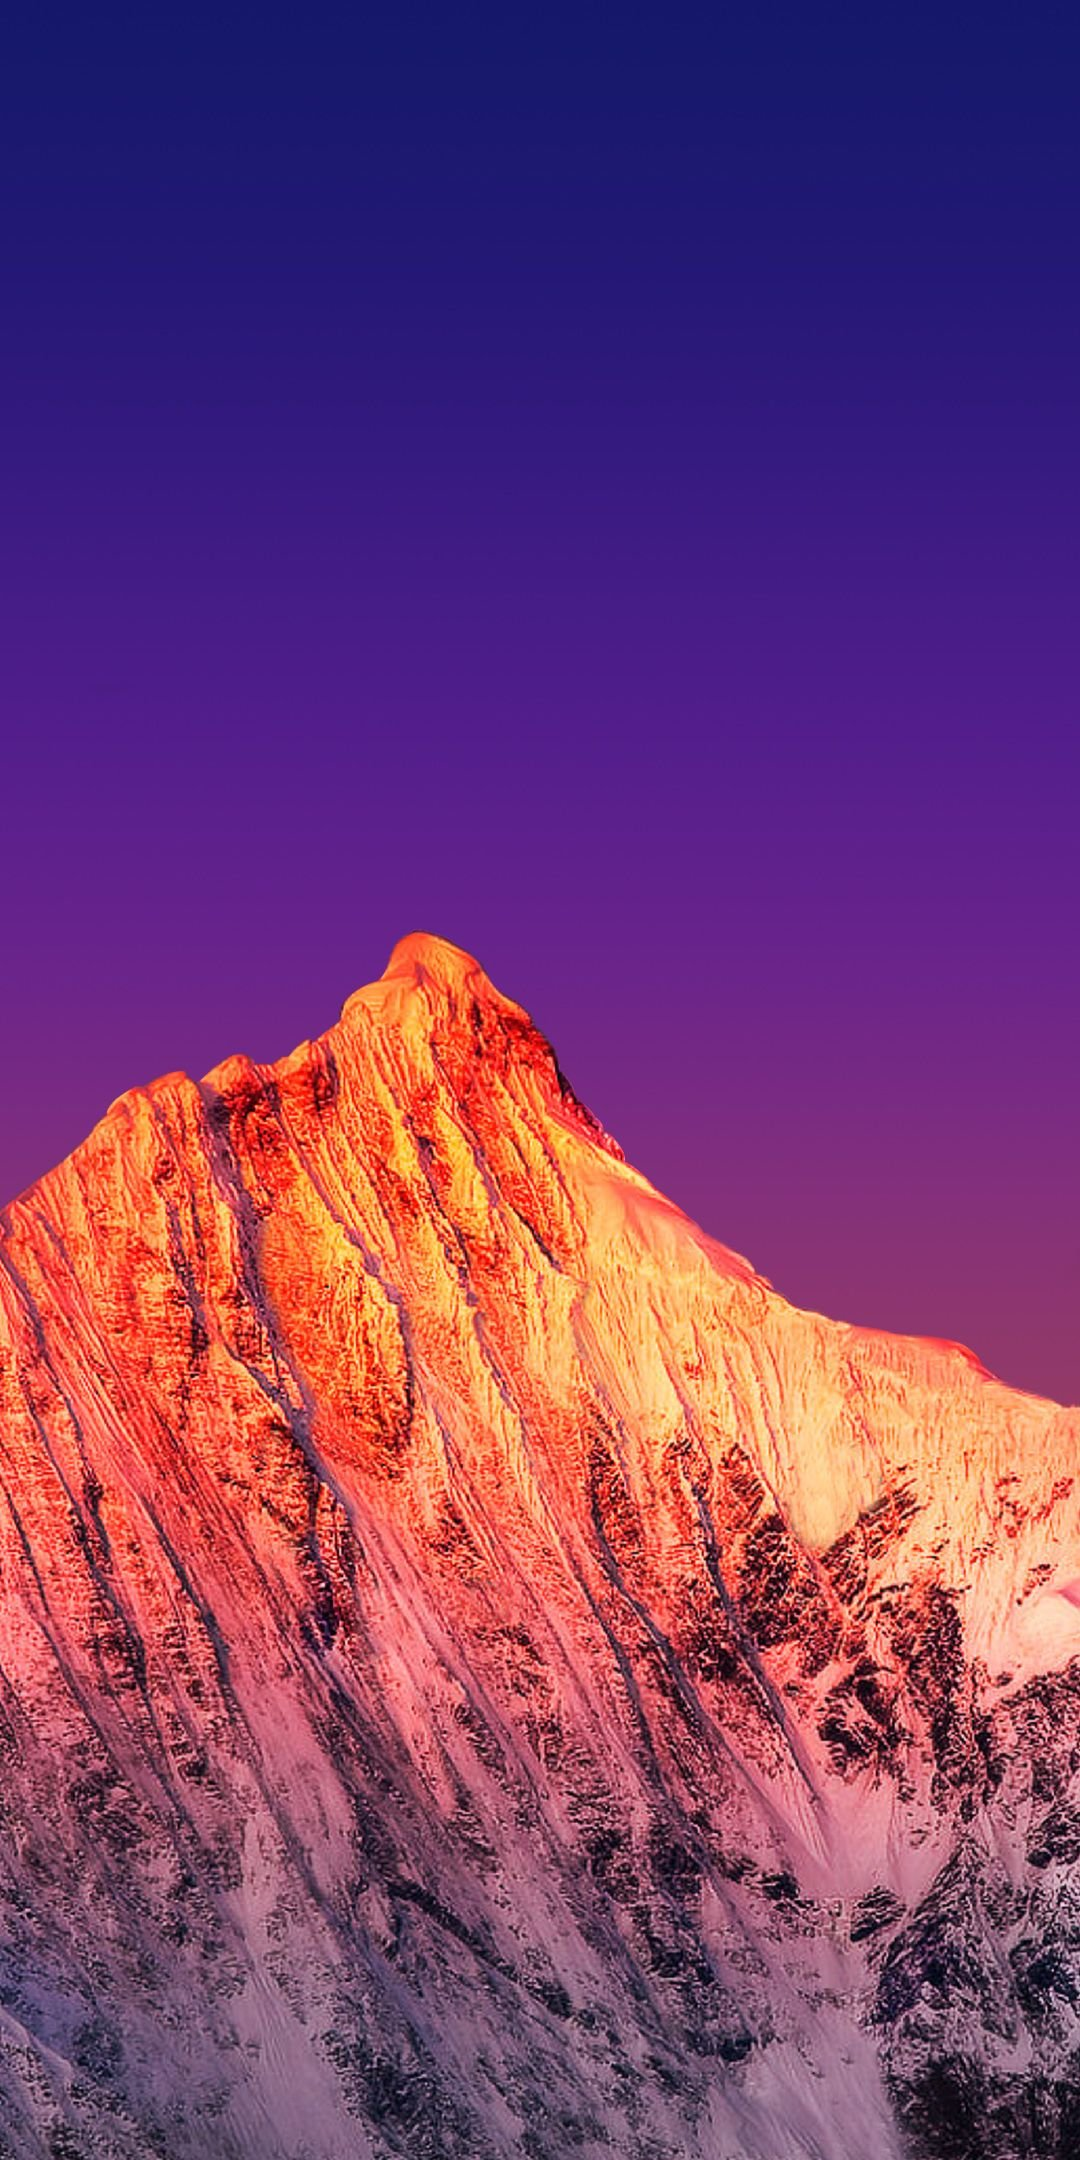 Lenovo S5 Stock Wallpapers | Download 12